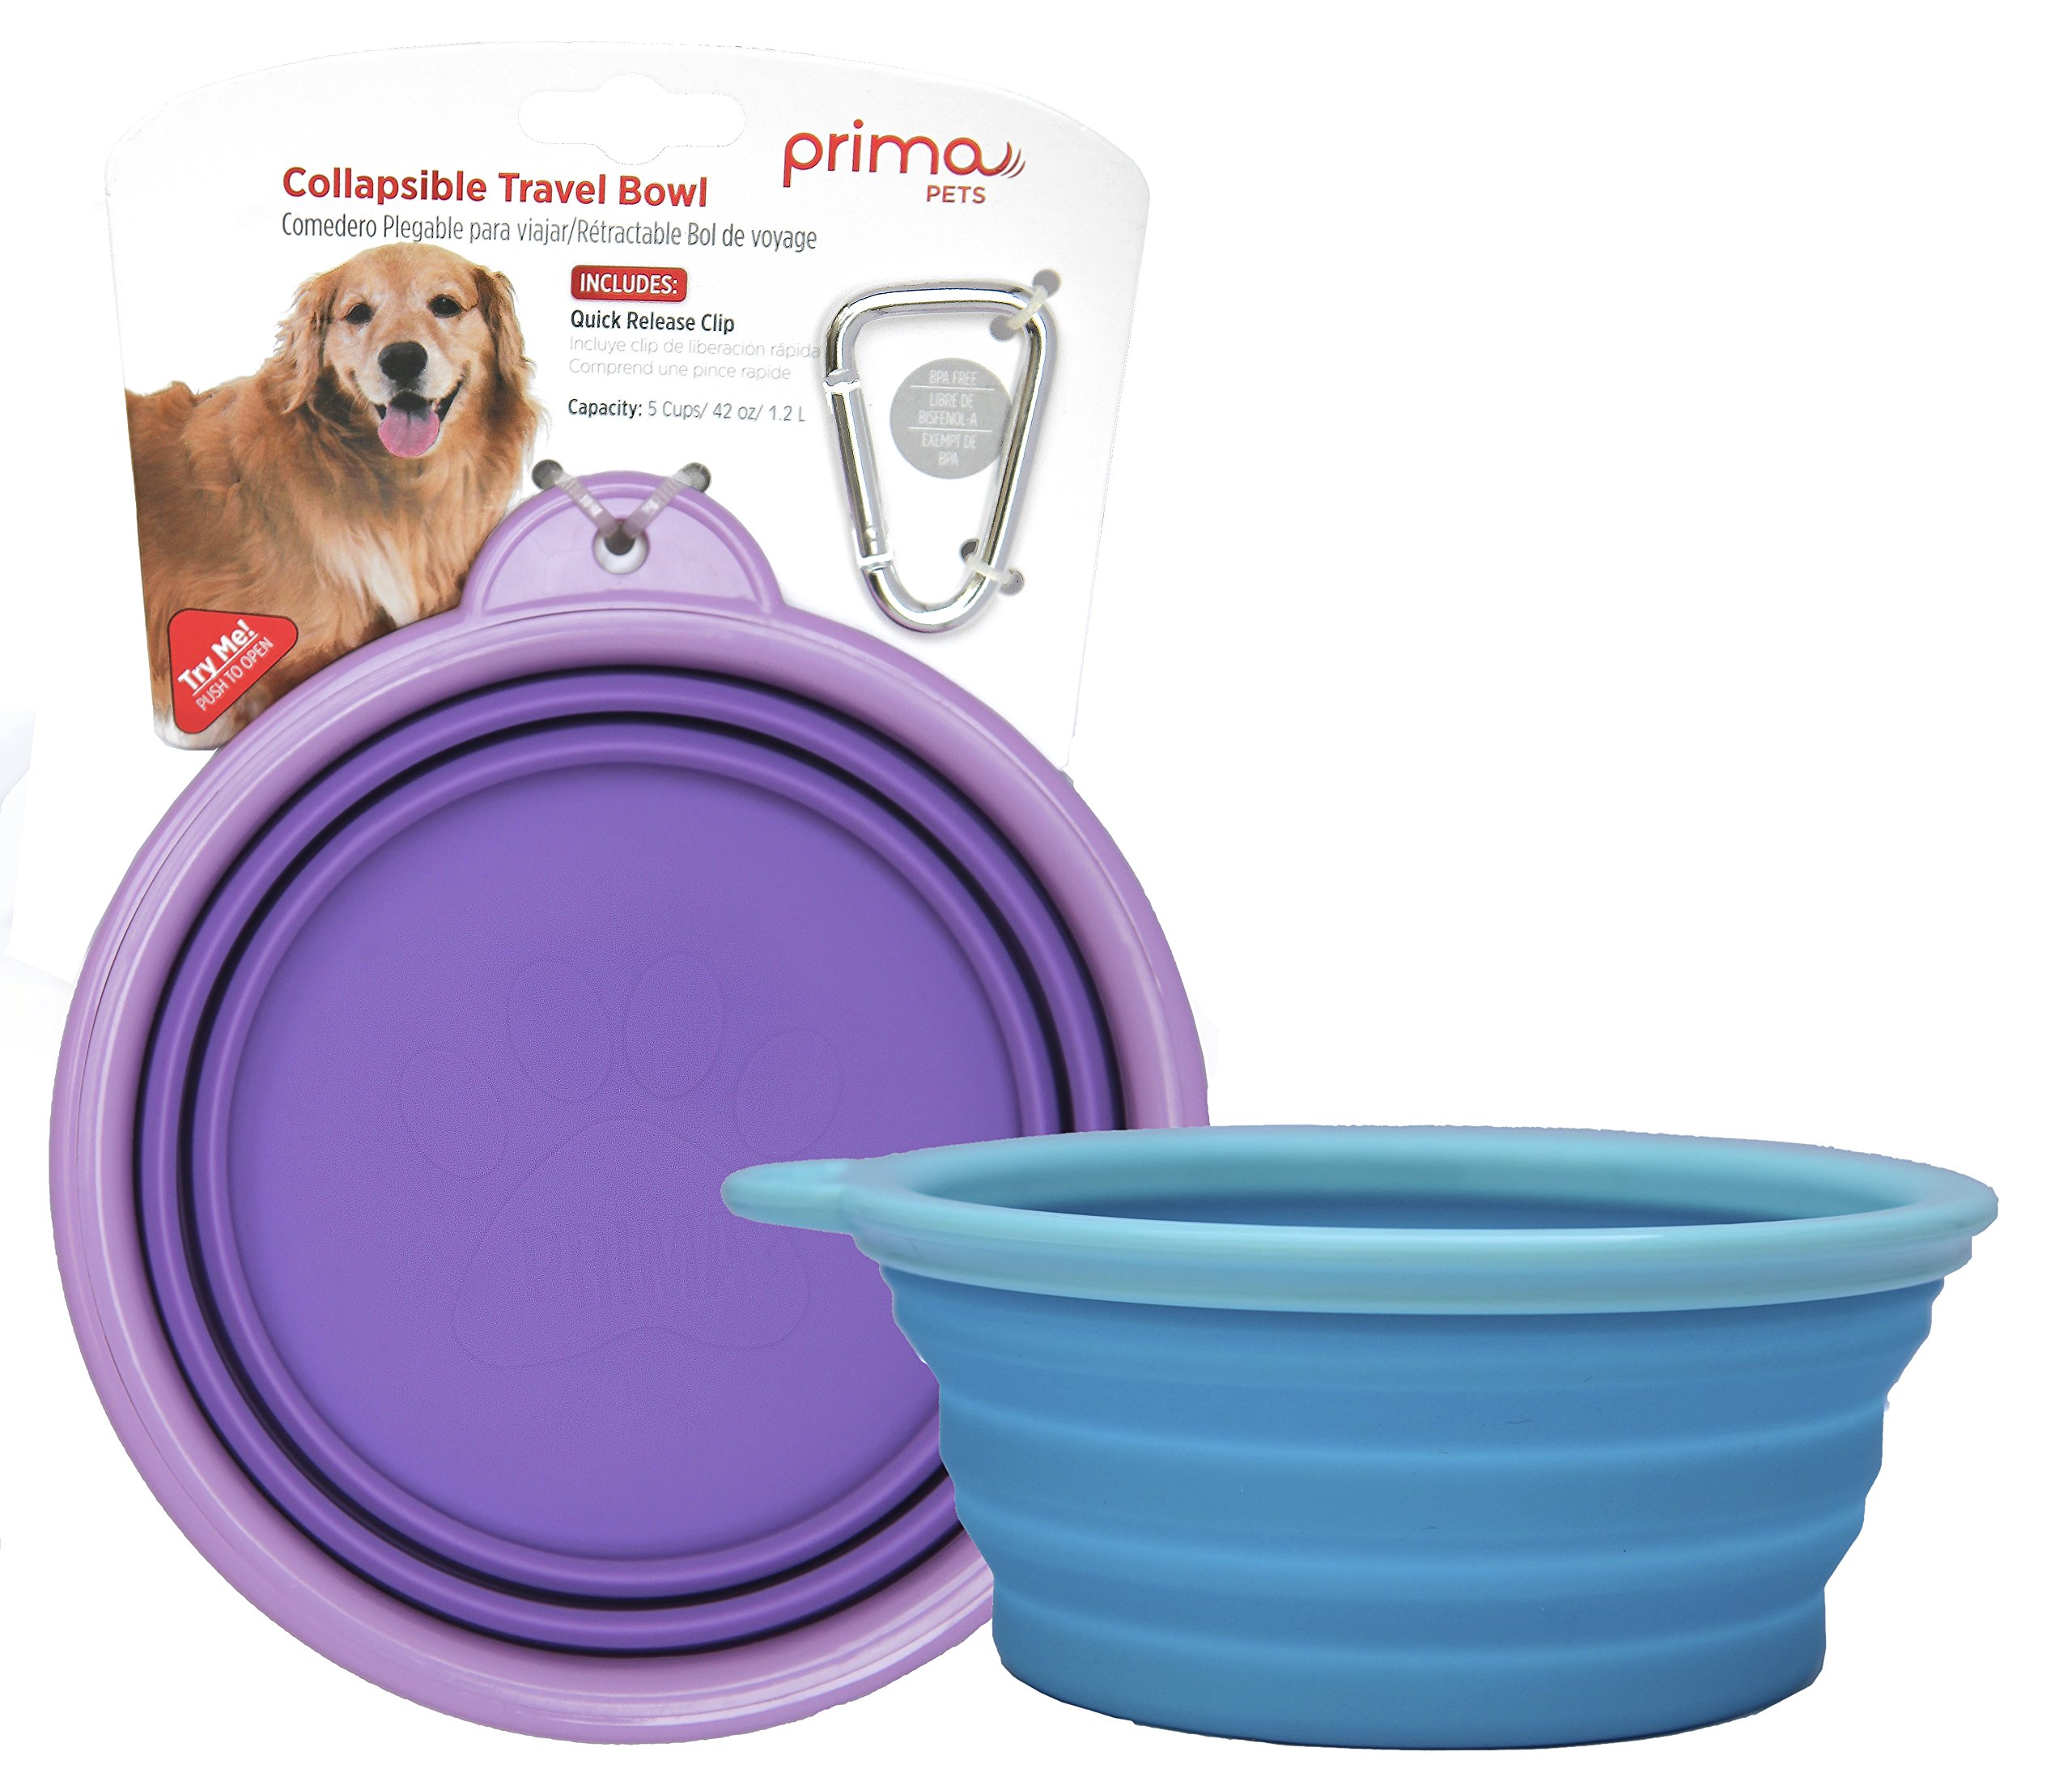 Prima Pet Collapsible Silicone Food & Water Travel Bowl with Clip for Dog and Cat, Portable and Durable Pop-up Feeder for Convenient On-the-go Feeding – Size: LARGE (5 Cups) 2 PACK - AQUA & PURPLE